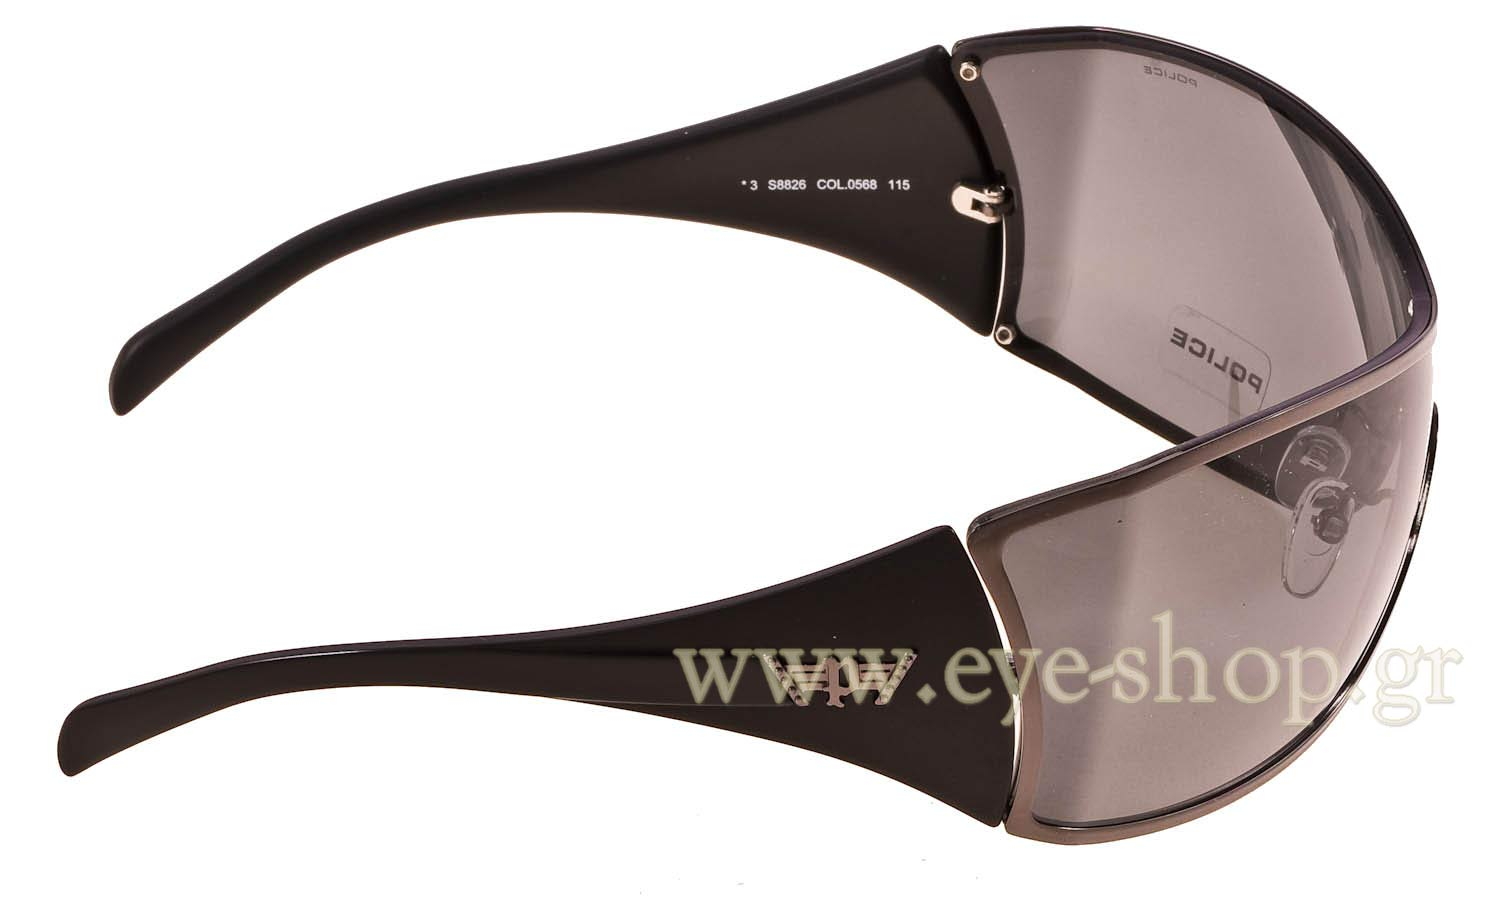 466ac231a871ee Sunglasses Police Store   United Nations System Chief Executives ...